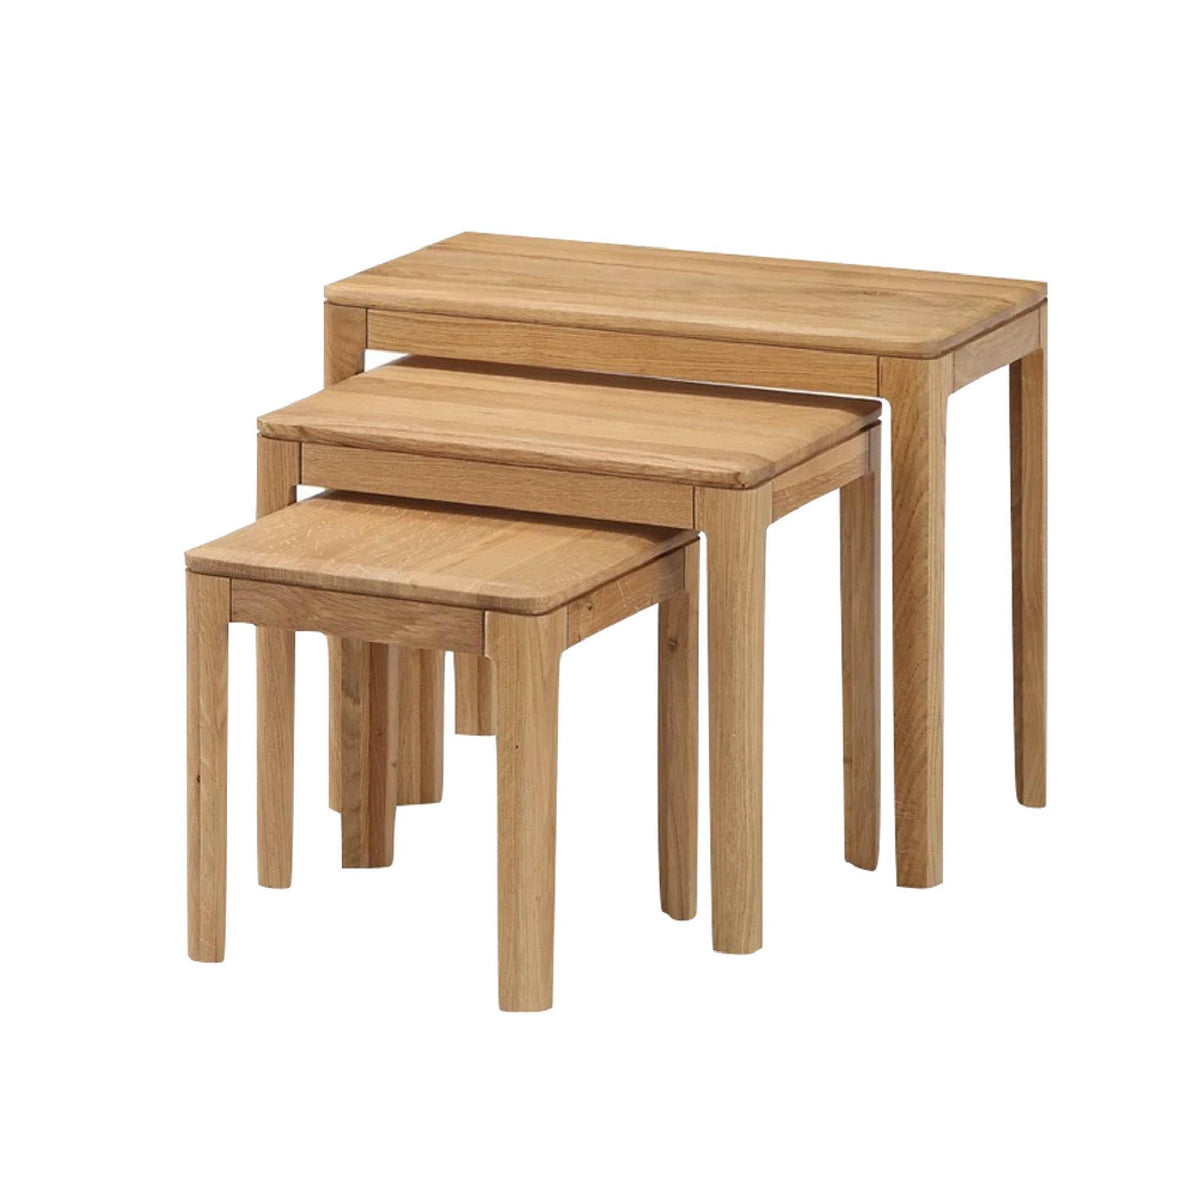 Dunmore Oak Nest of Tables by Roseland Furniture